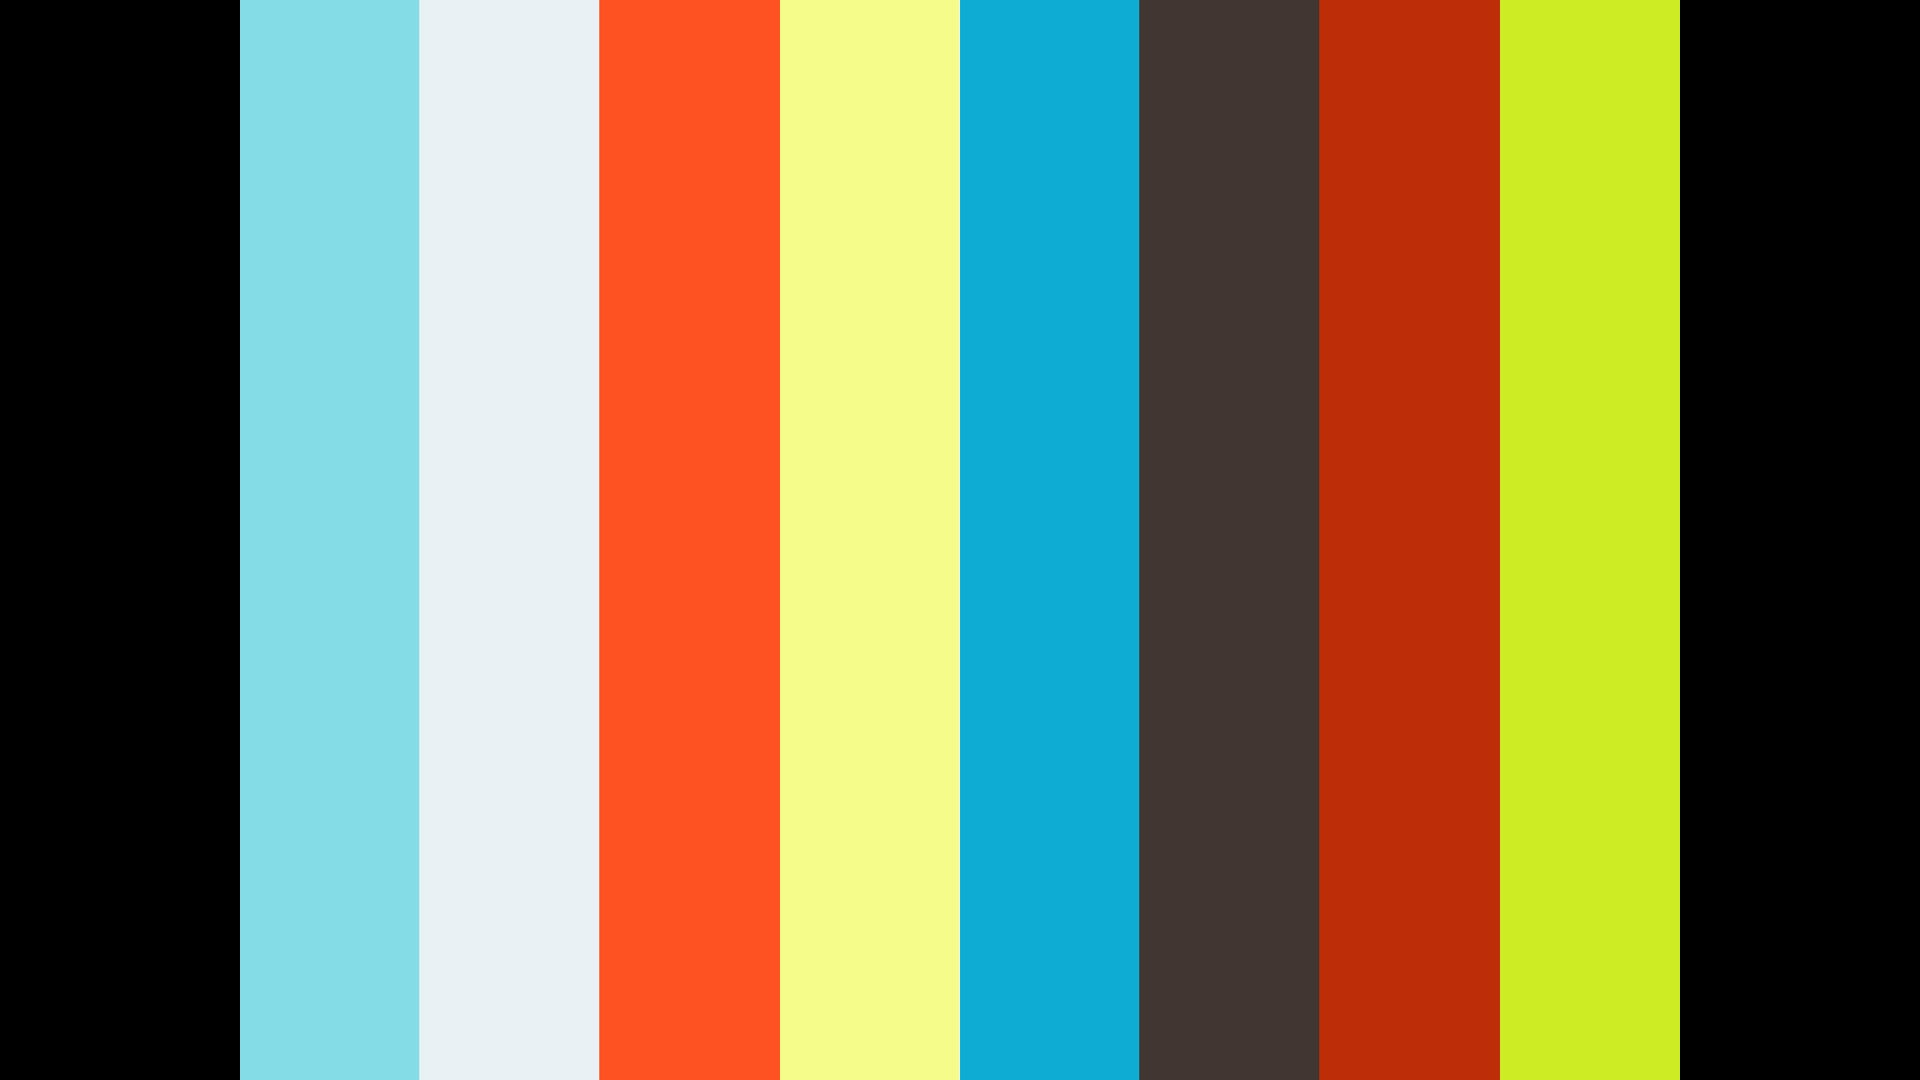 Idit Levine – TechStrong TV